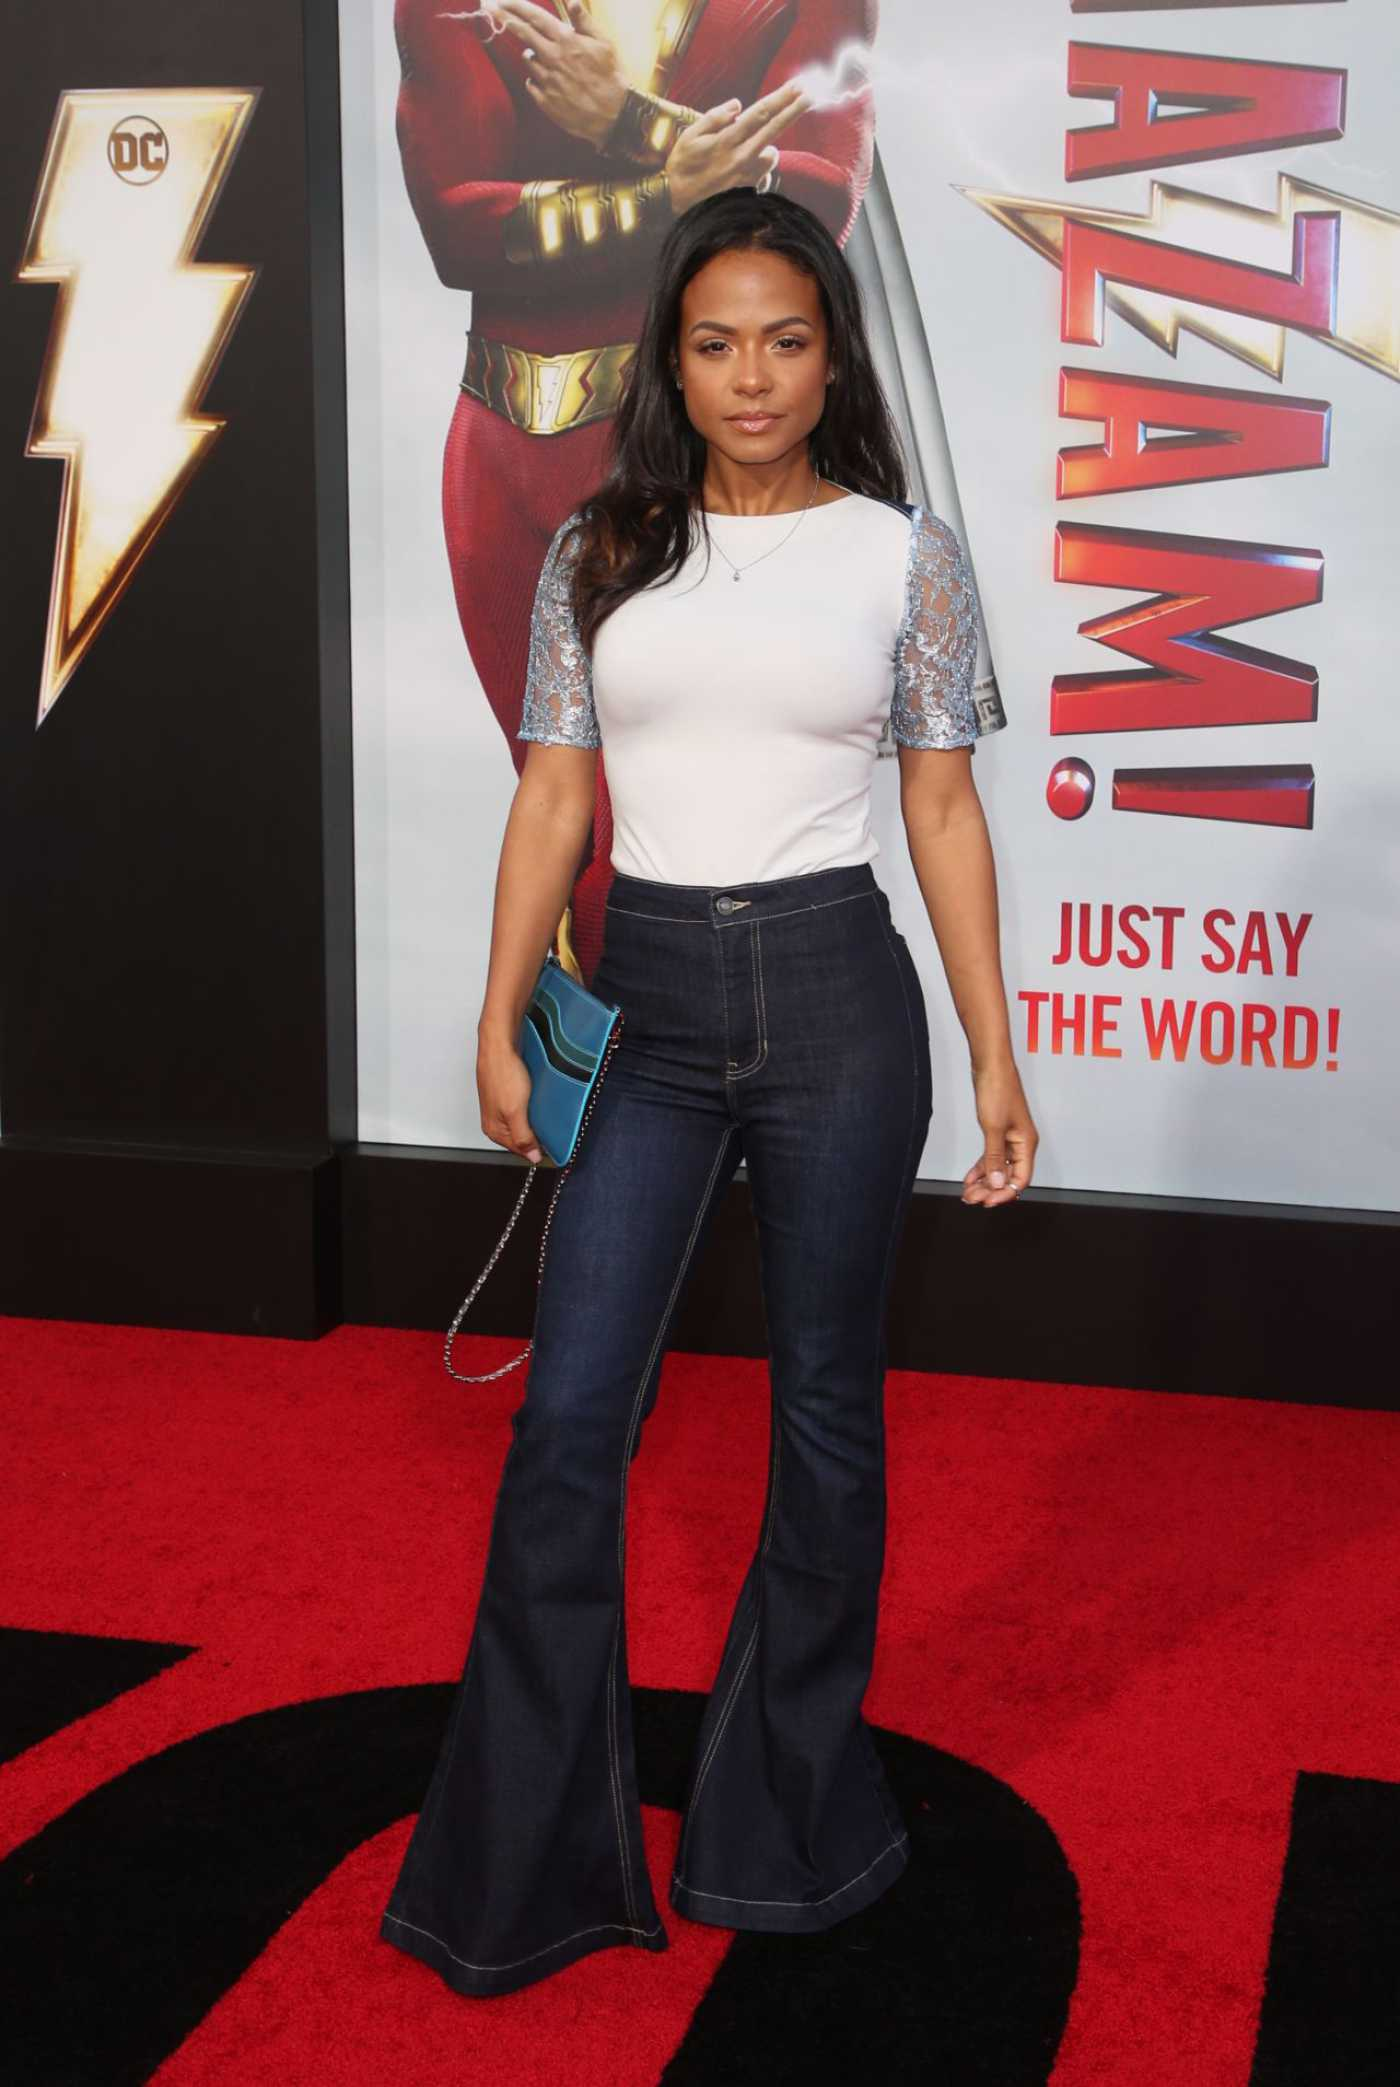 Christina Milian Attends the Shazam Premiere at TCL Chinese Thatre in Los Angeles 03/28/2019